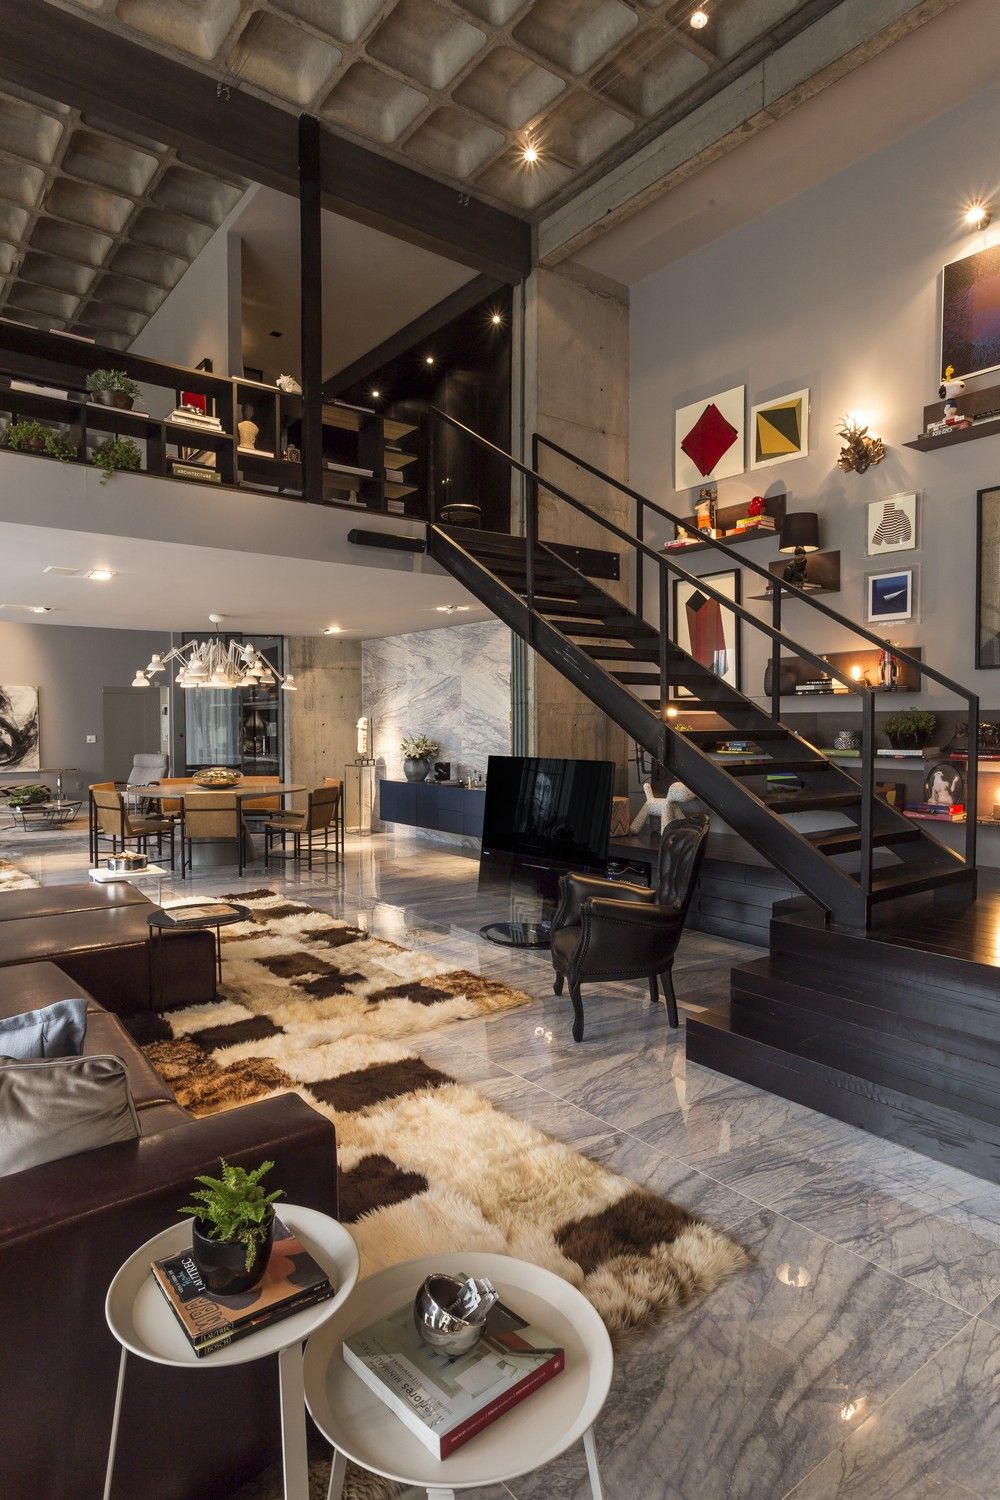 One of my favorite loft designs casadesign interiors did an incredible job designing loft 44 located in praia brava brazil a modern industrial open